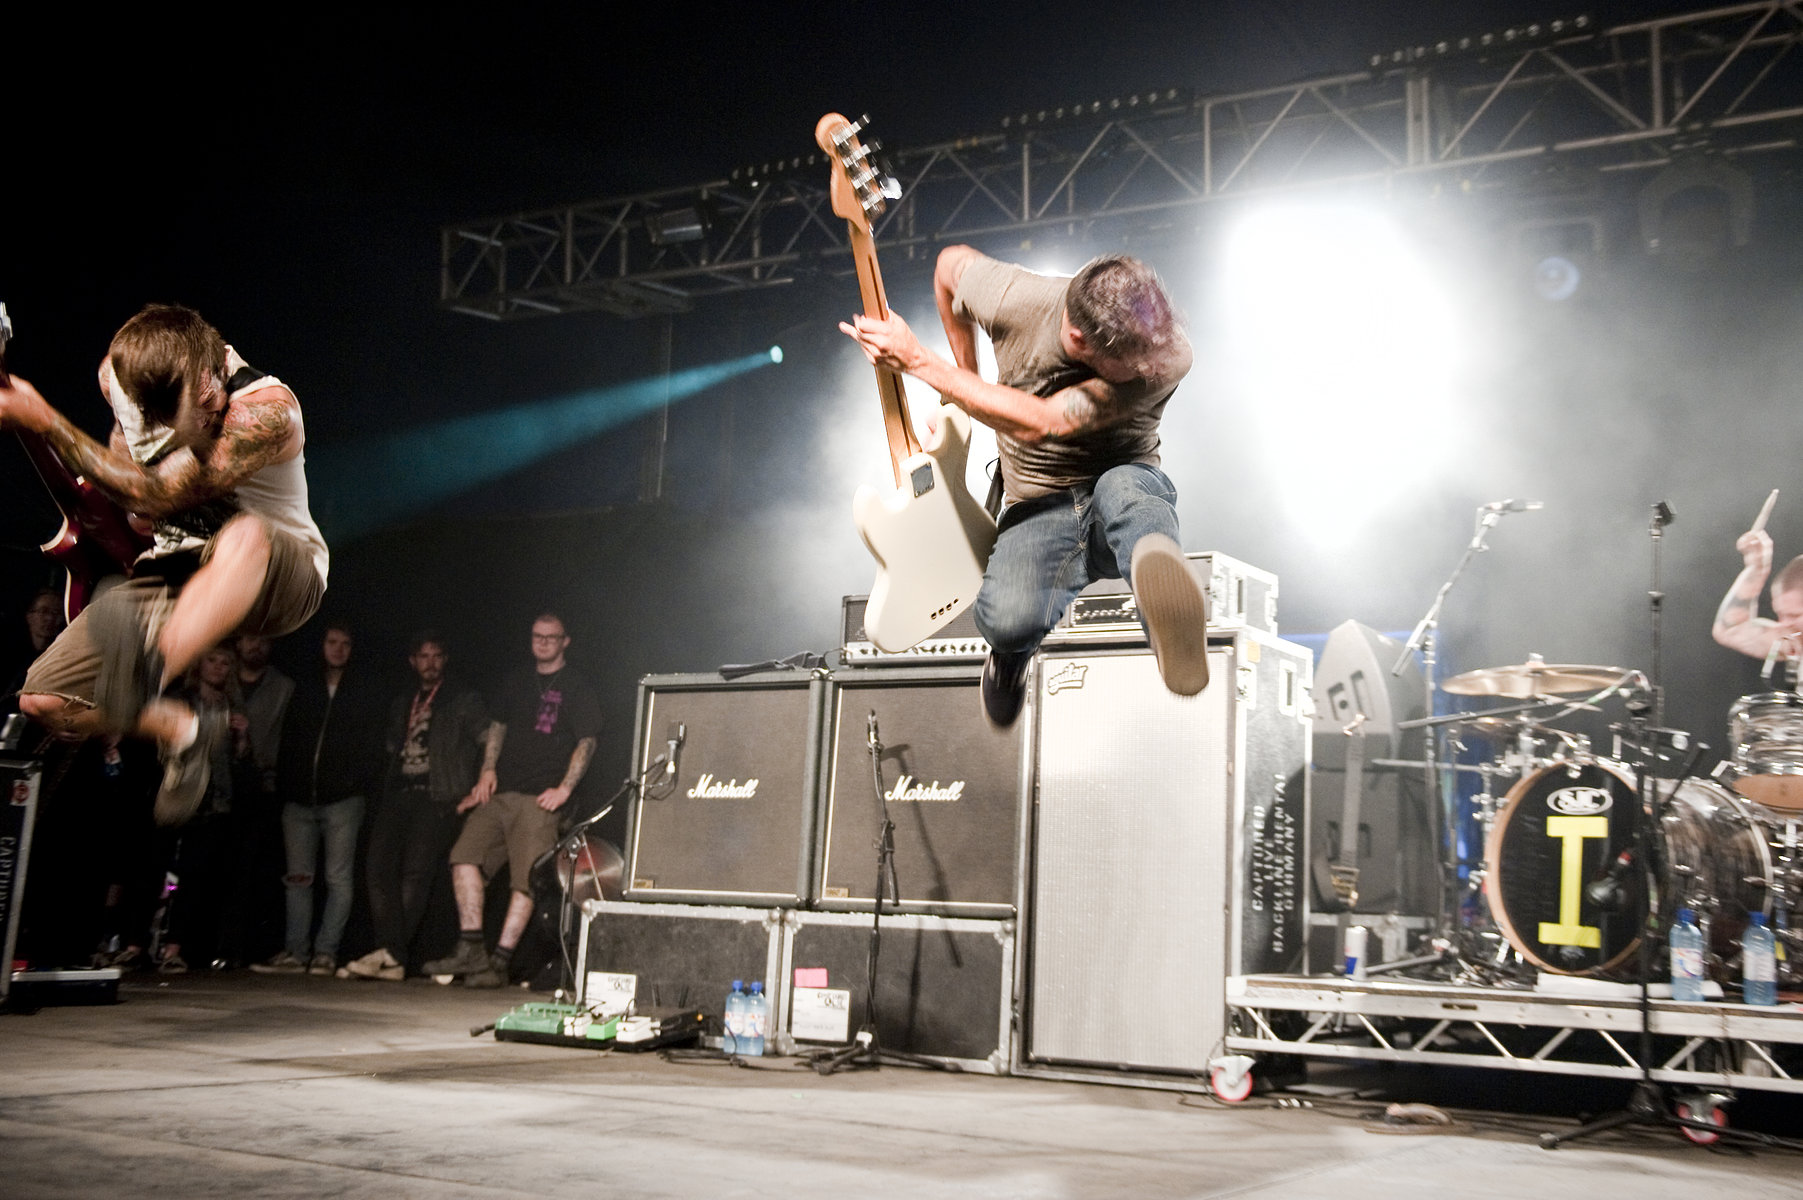 Every Time I Die // Reading Festival 2012